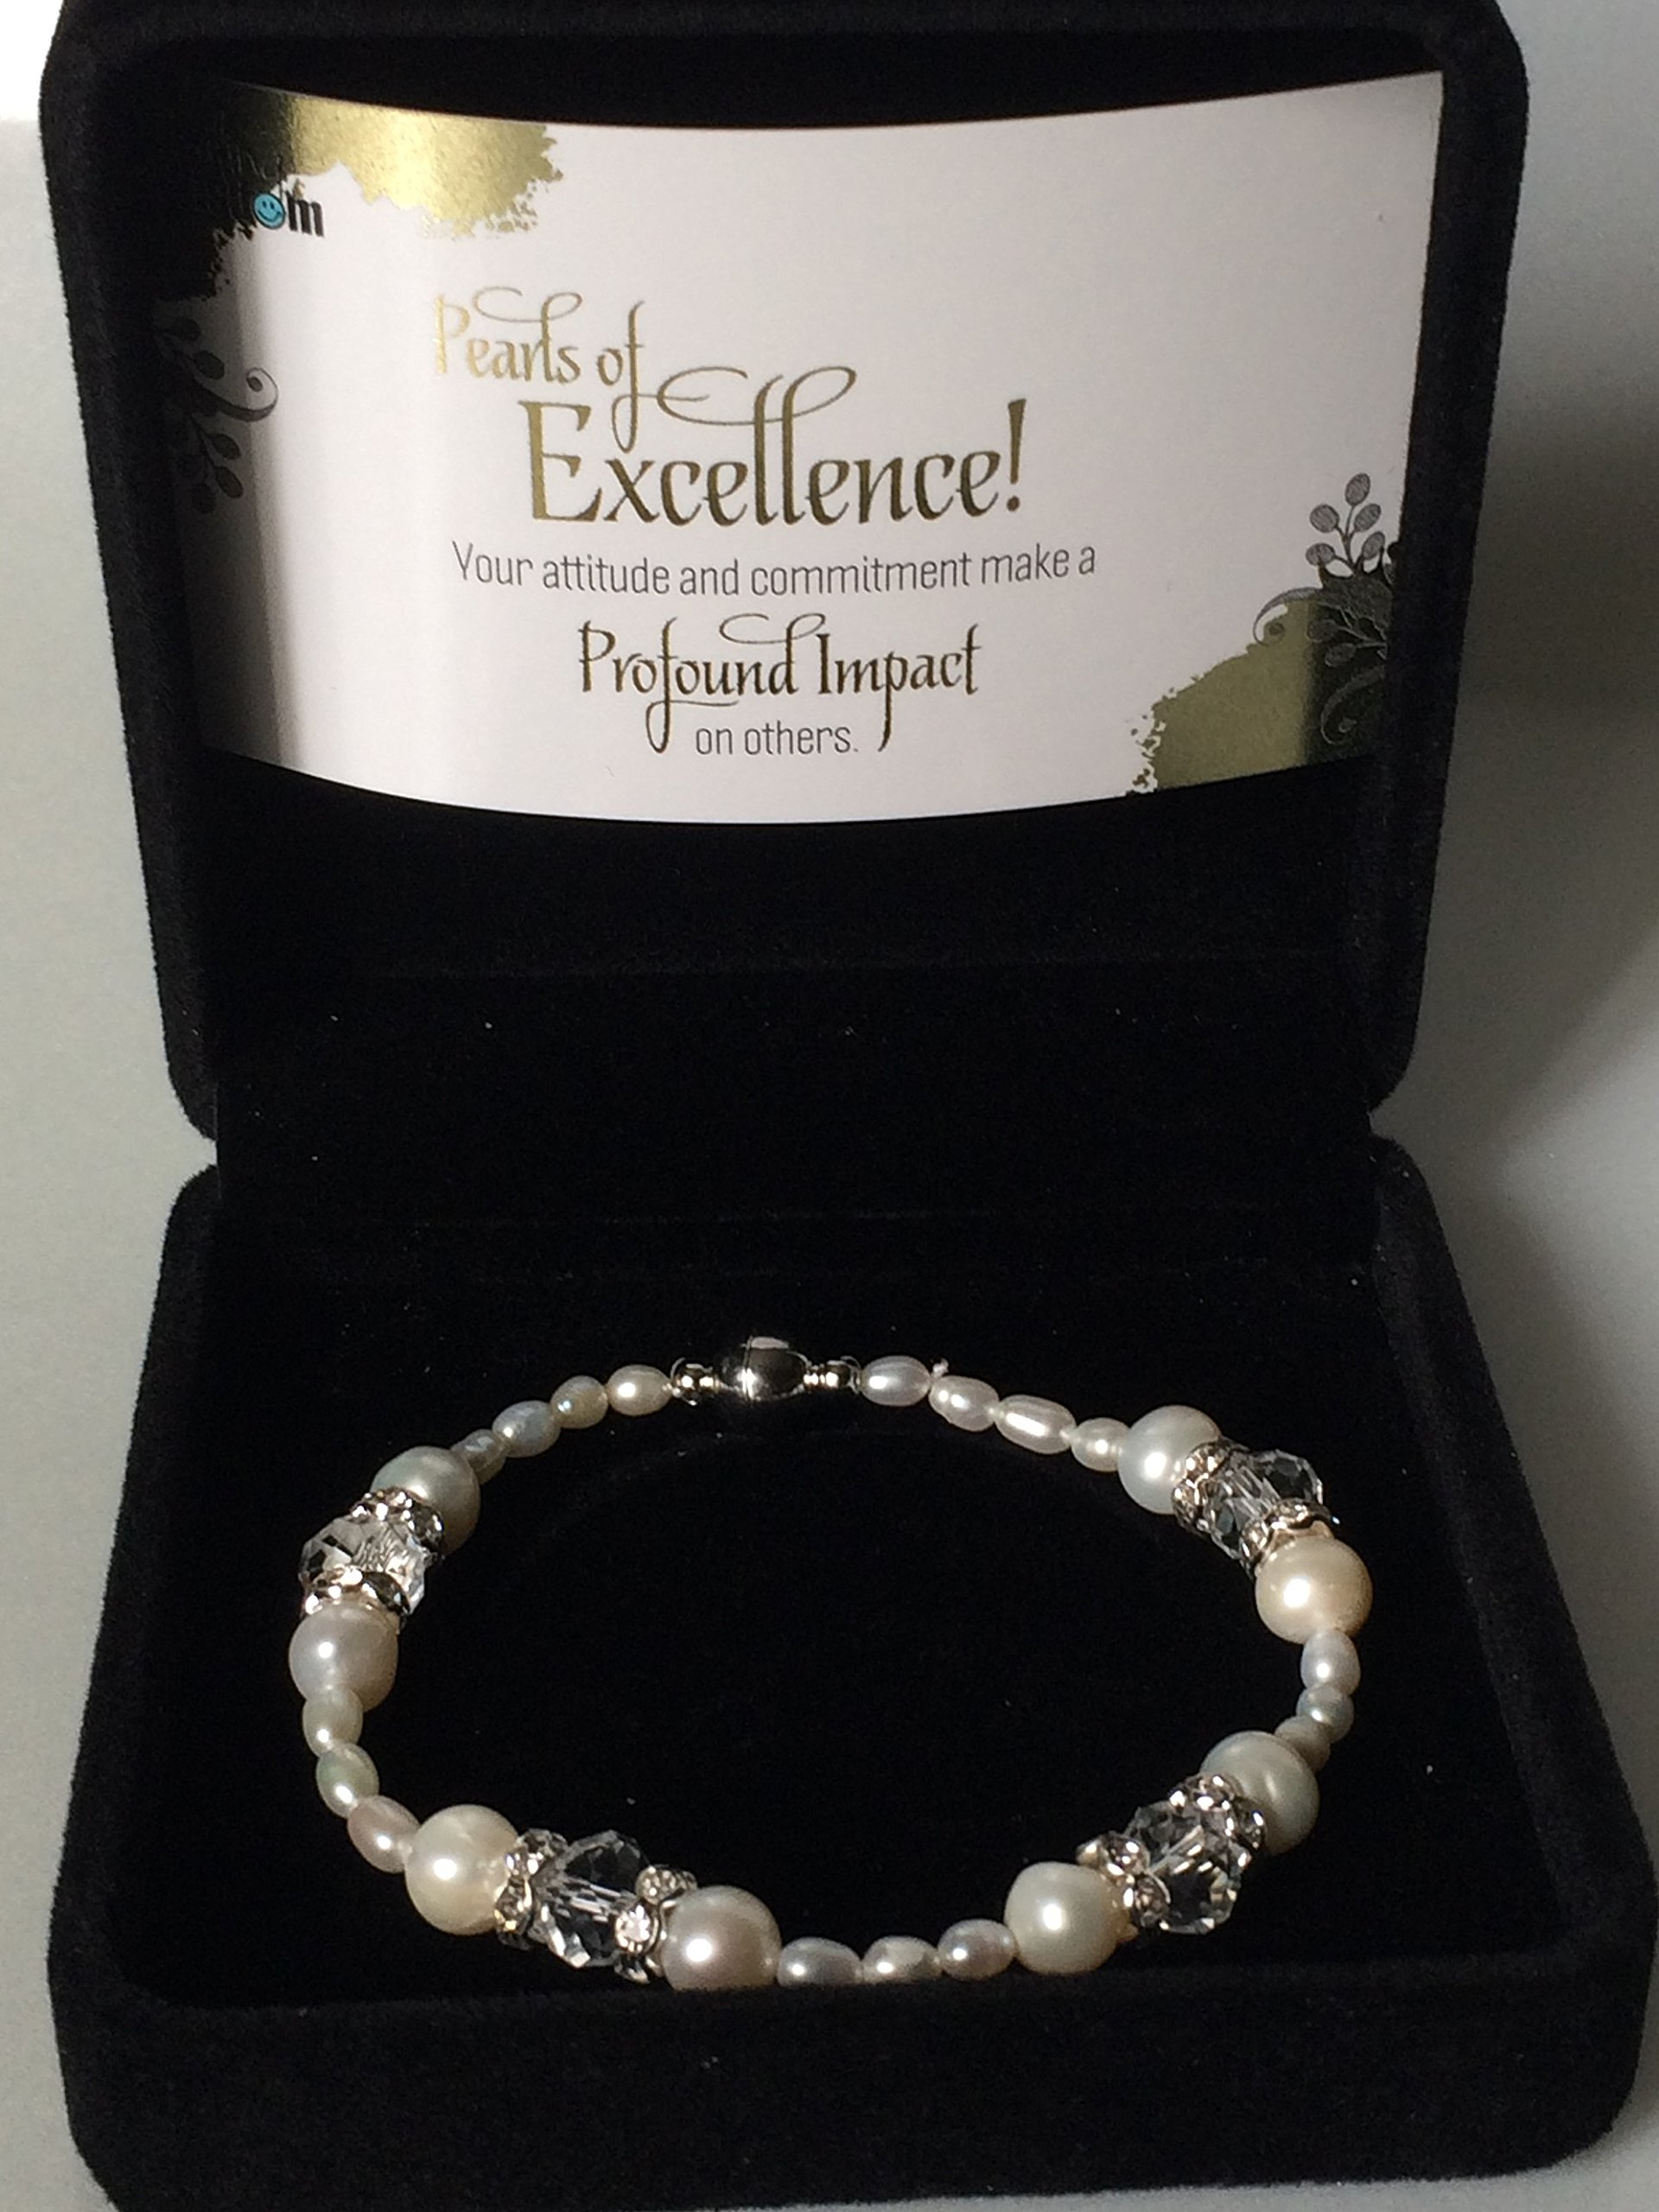 Smiling Wisdom - Pearls of Excellence Recognition Award - Freshwater Cultured Pearl Bracelet - Her, Woman, Employees, Team Members, Students, Girls, Women, Rock Stars - Natural Pearl Color by Smiling Wisdom